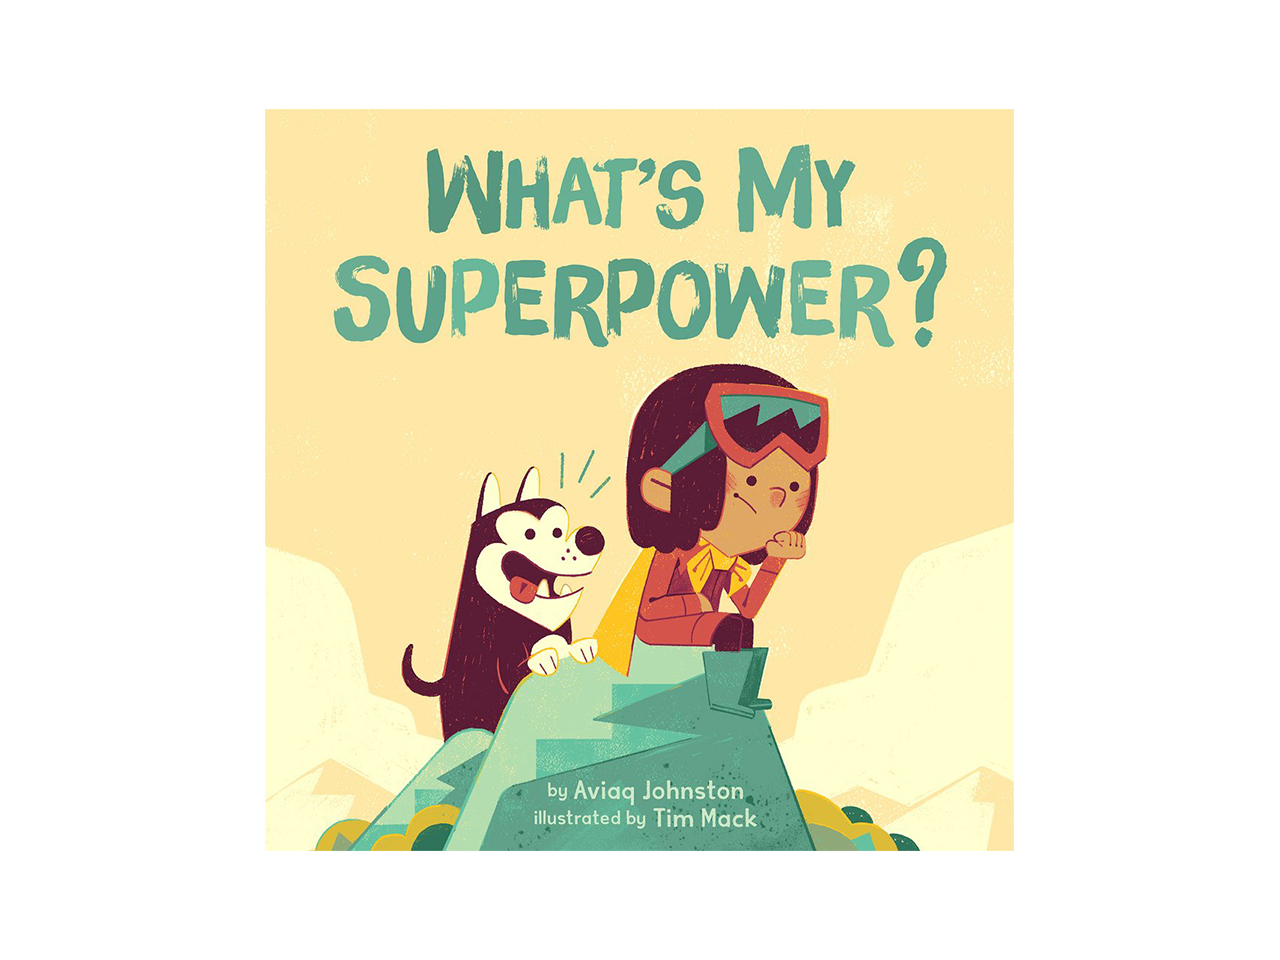 Cover art for What's my Superpower showing a kid in snow gear sitting on a rock with a husky next to him